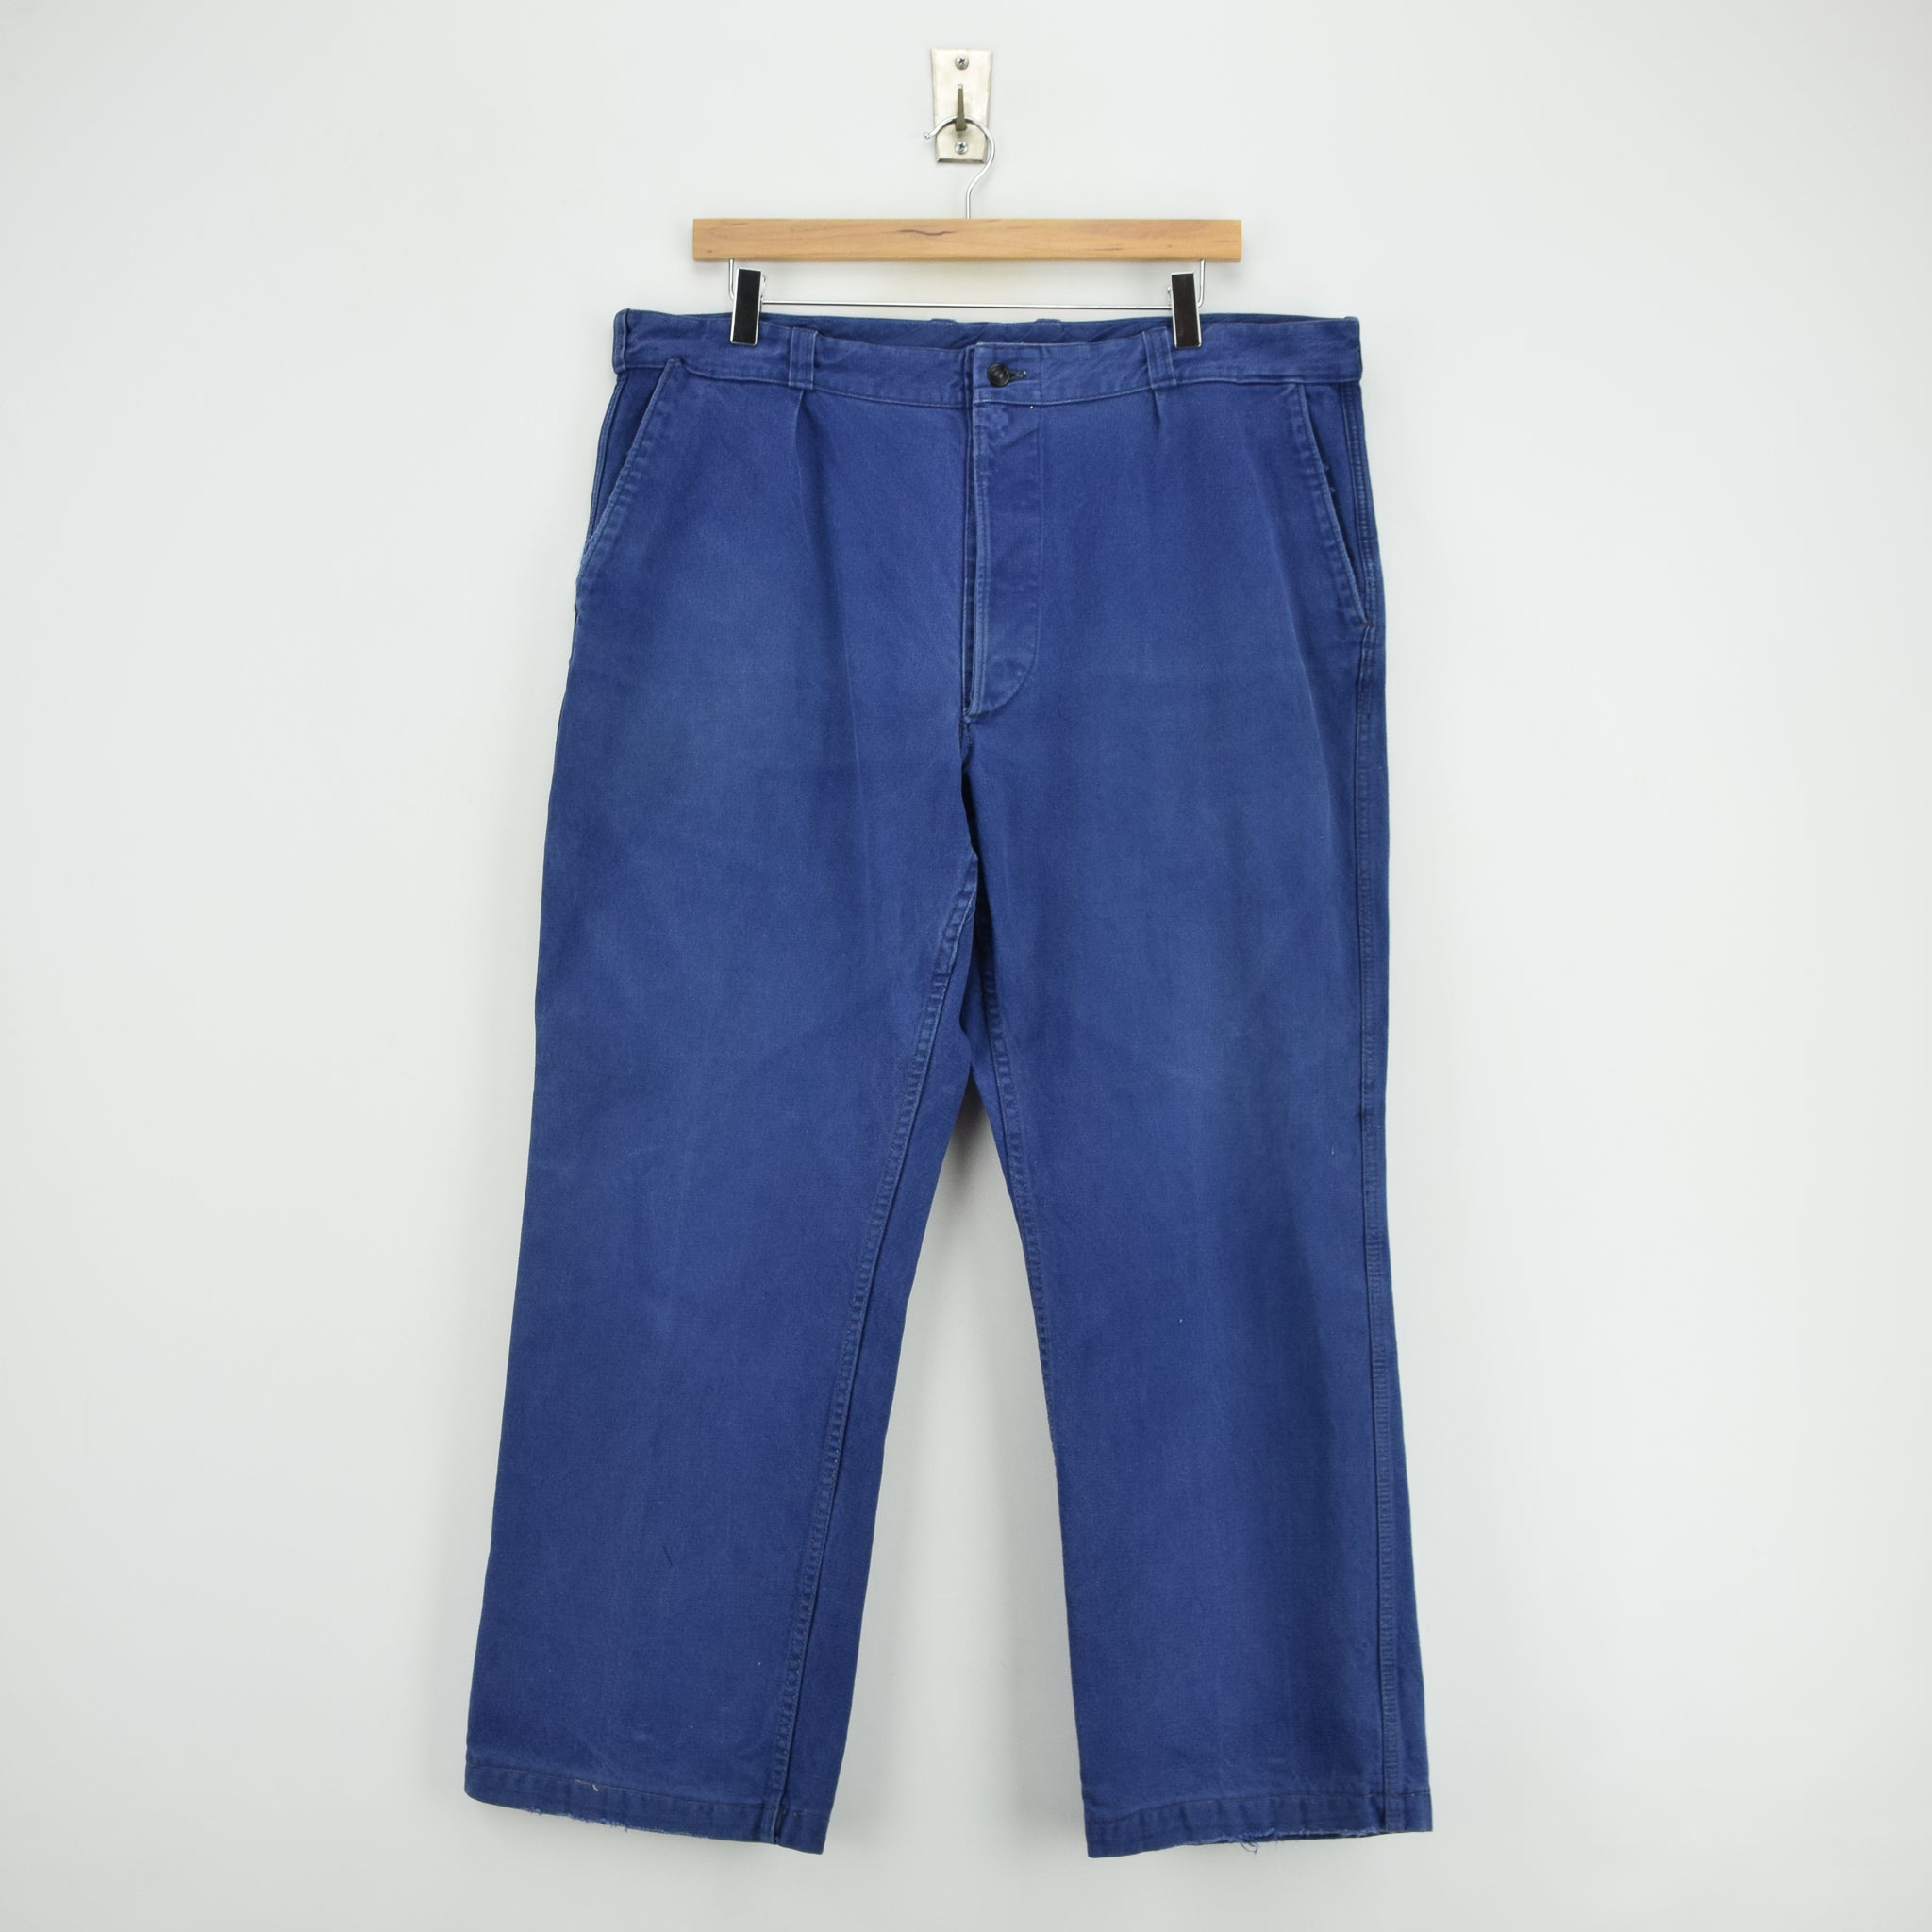 Vintage Workwear Blue Vetra French Work Utility Trousers France Made 36 W 28 L front